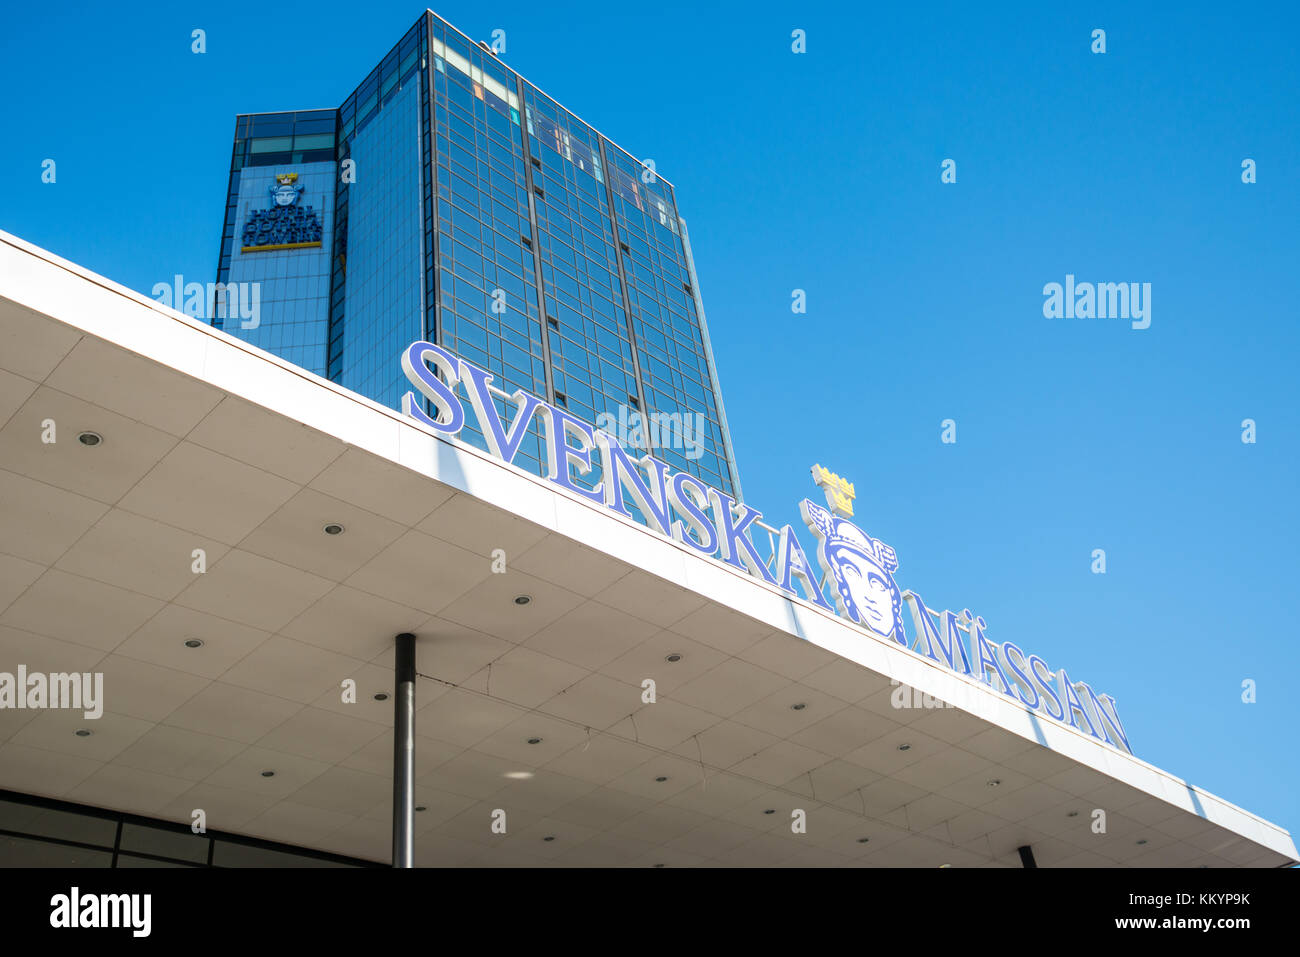 Entrance to Svenska Mässan - the Swedish Exhibition and Congress Center in Gothenburg. It is one of the largest - Stock Image